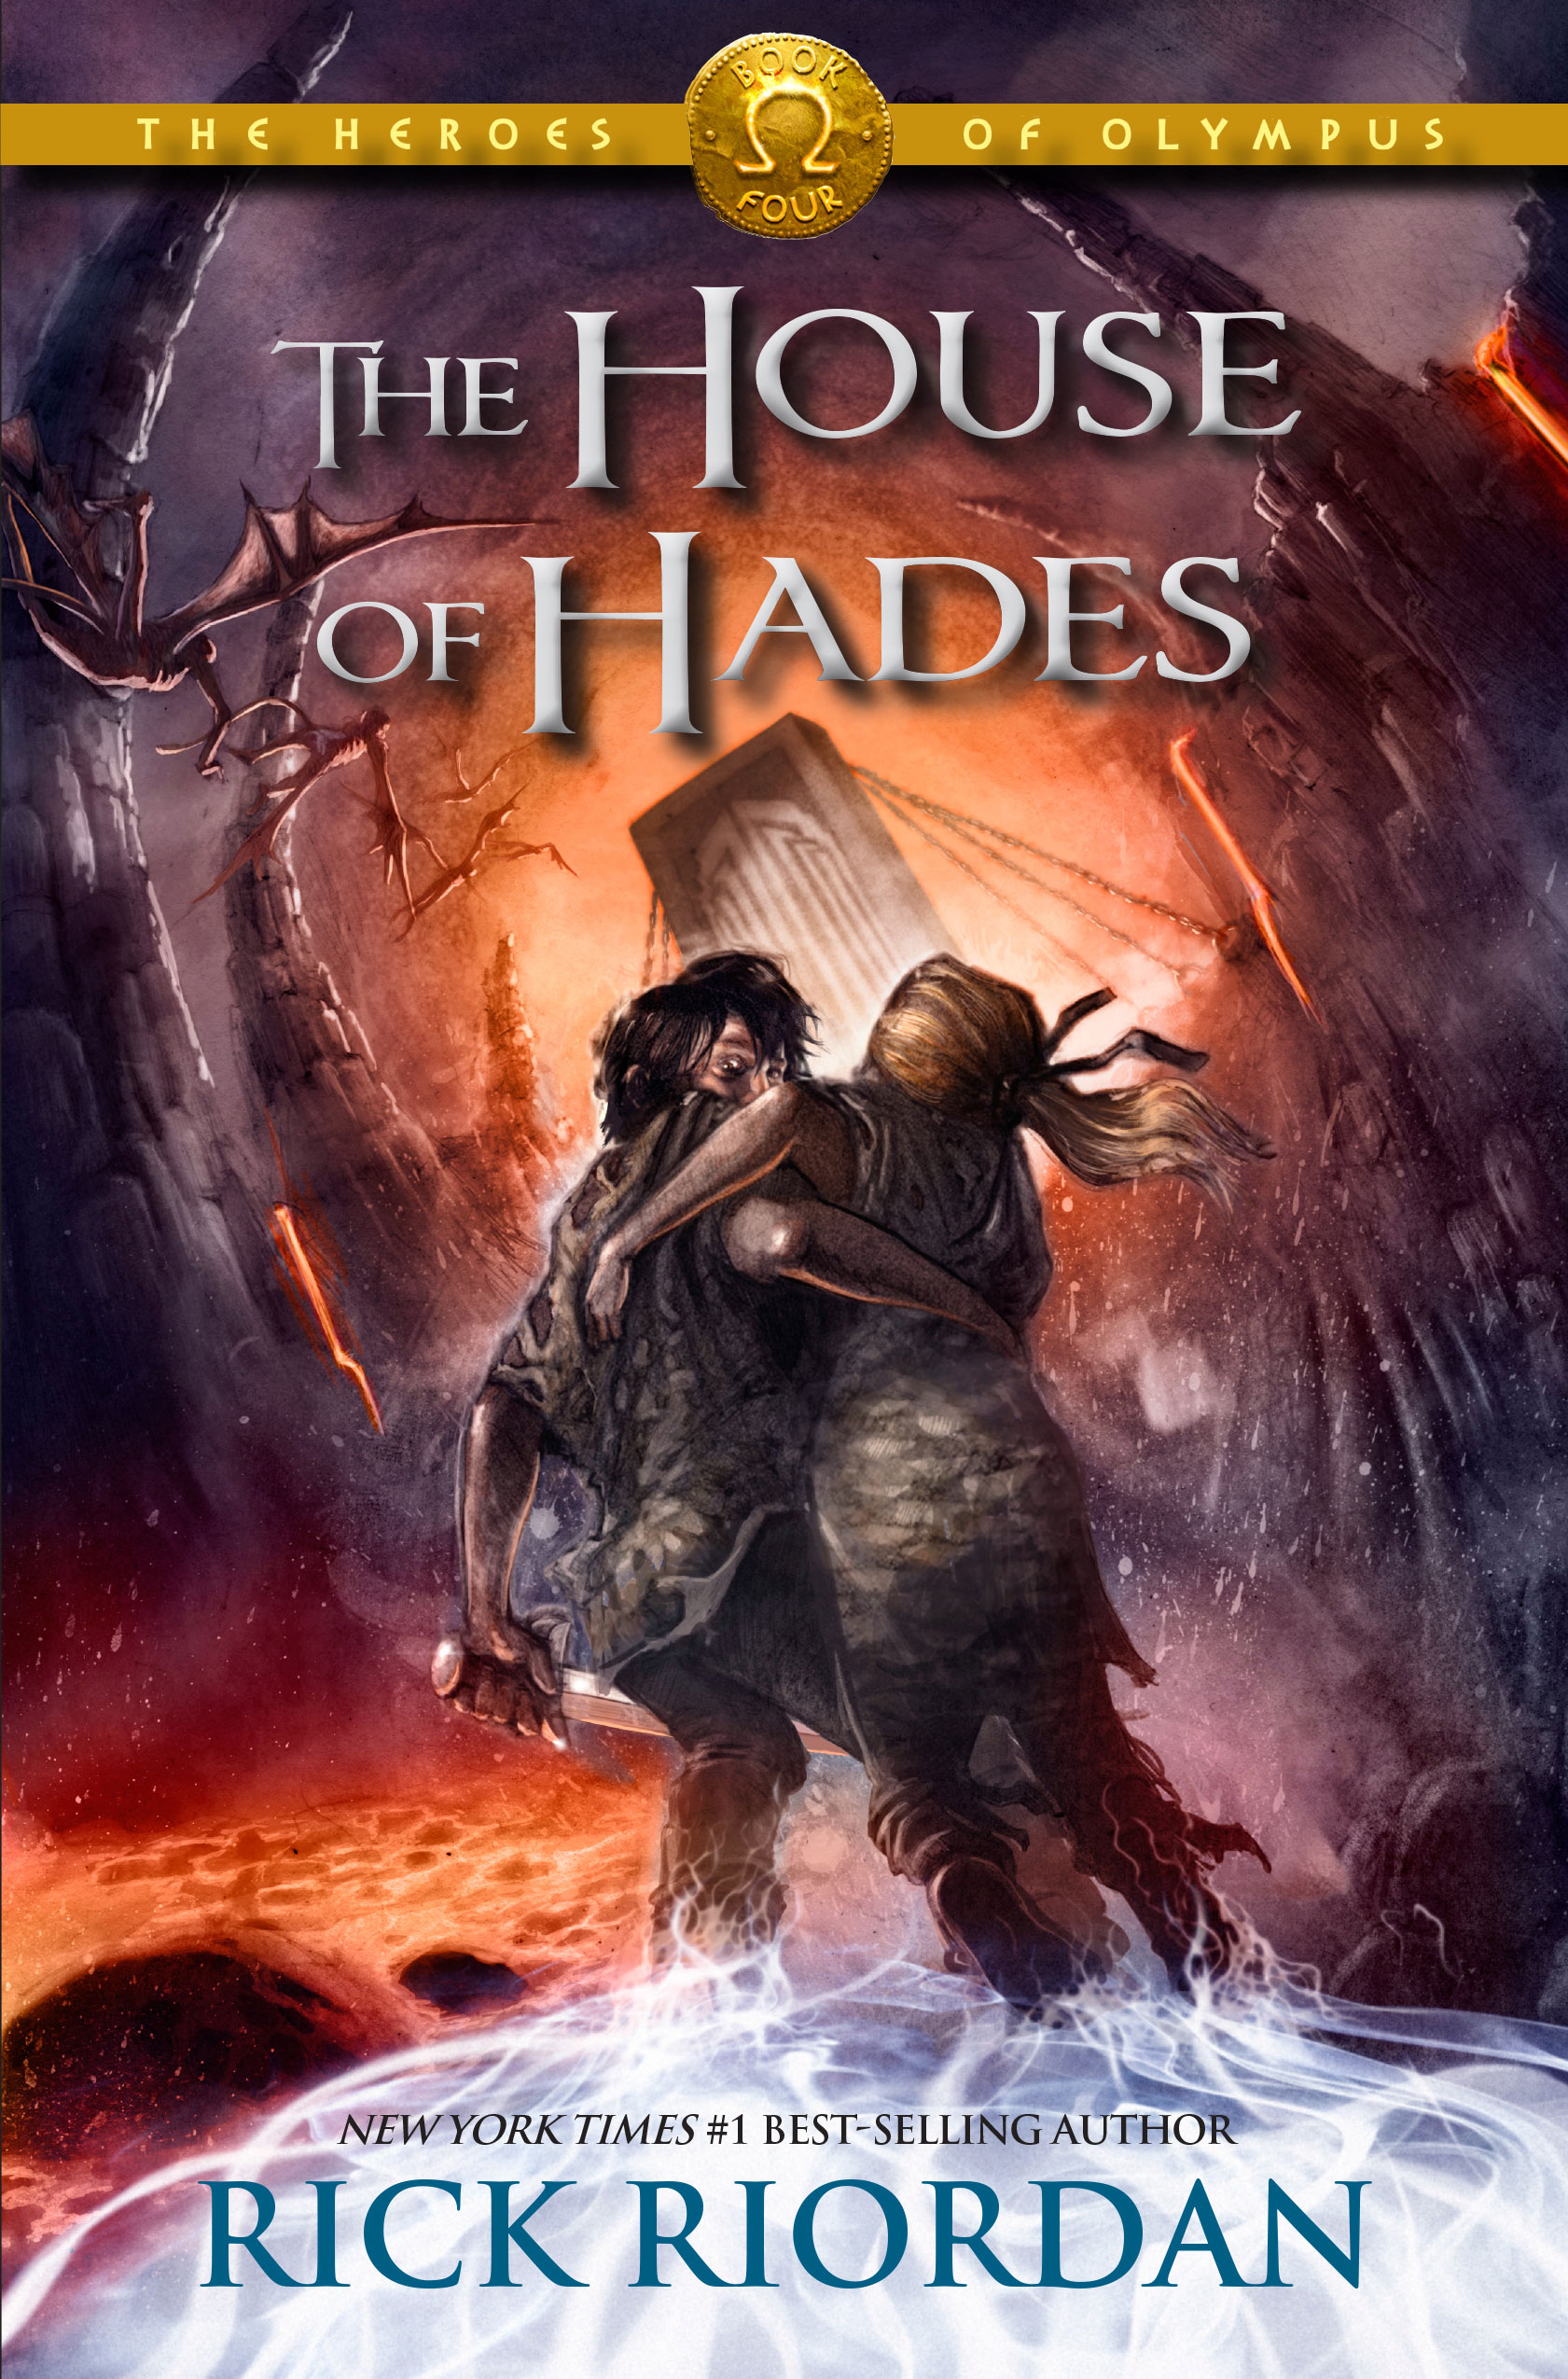 Cover Image of The Heroes of Olympus, Book Four: The House of Hades